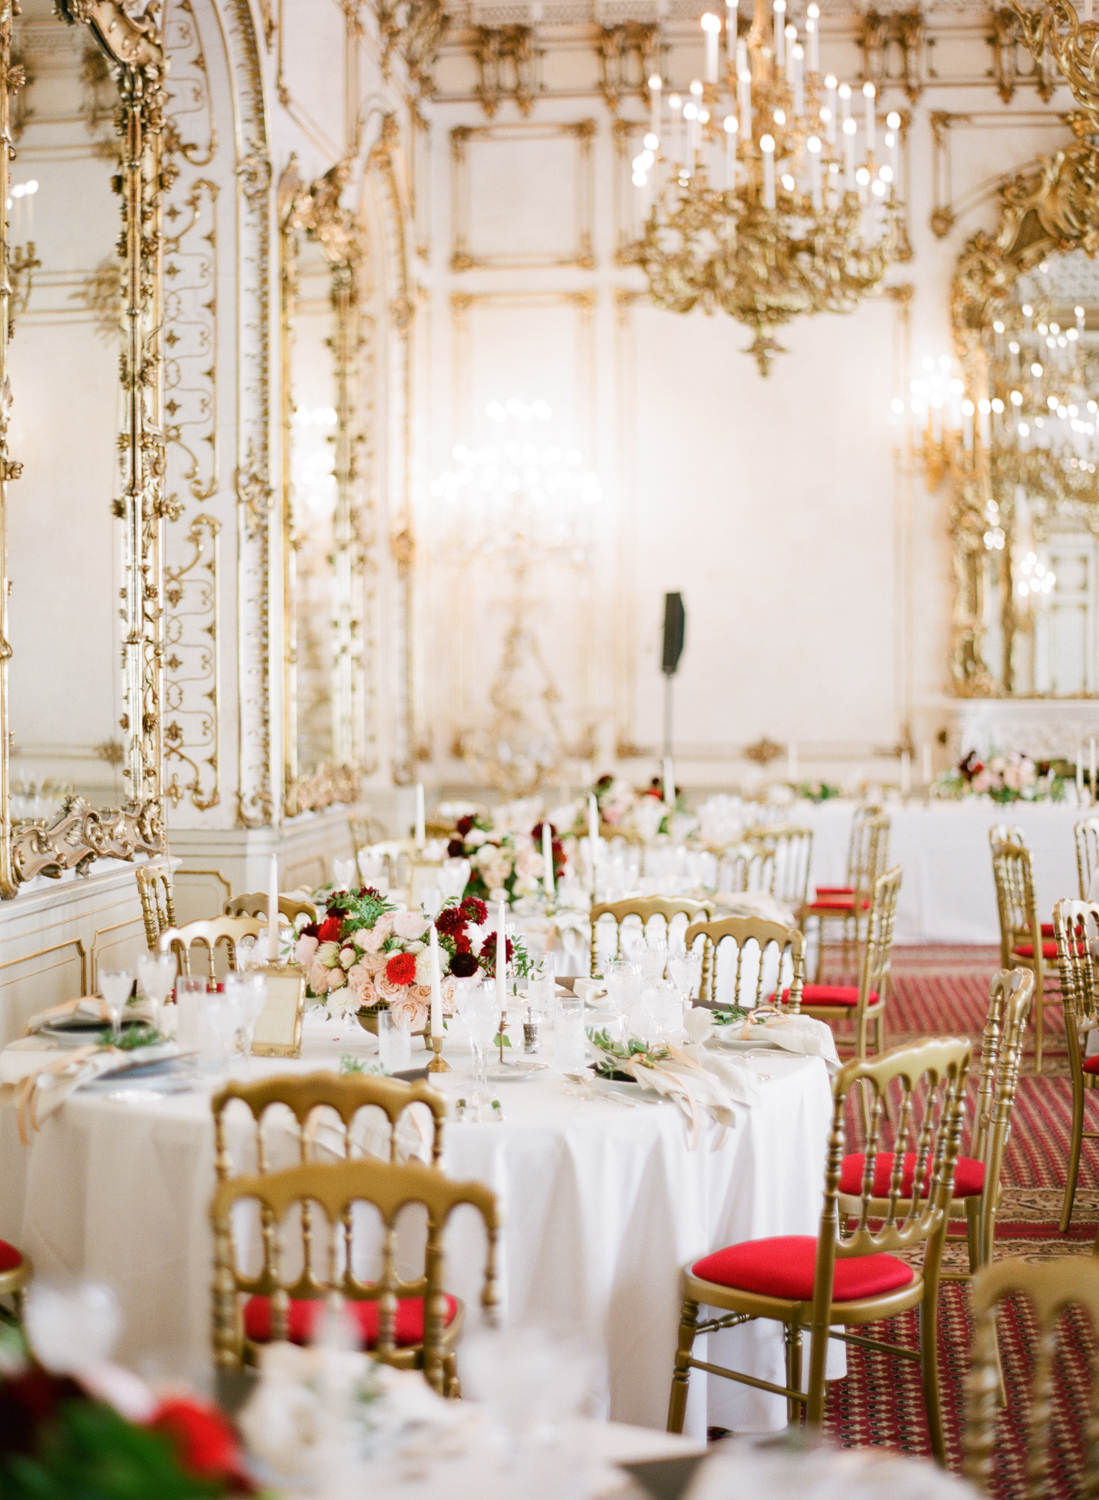 palais pallavicini wedding hotel imperial vienna wedding photographer nikol bodnarova photography 145.JPG